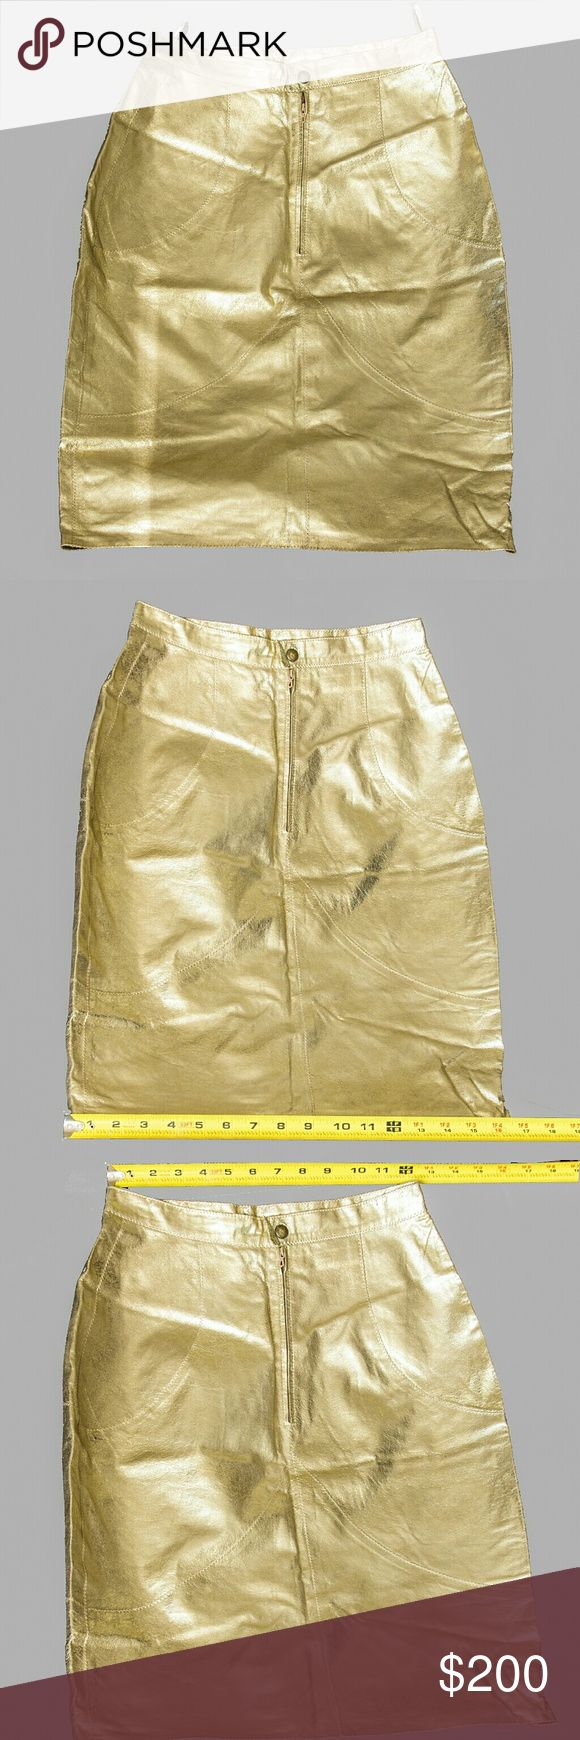 """Robert Cavalli Metallic Gold Pencil Skirt Gently used Vintage Roberto Cavalli Metallic Gold Straight Pencil   100% Genuine Italian Leather Since this is a vintage piece I have added pictures with the actual measurements of the skirt to avoid any confusion bu just saying that is """"small"""" size  This is a Very hard to find Piece. Skirt looks amazing, and Pictures don't make justice for what it looks like in real life. Roberto Cavalli Skirts Pencil"""